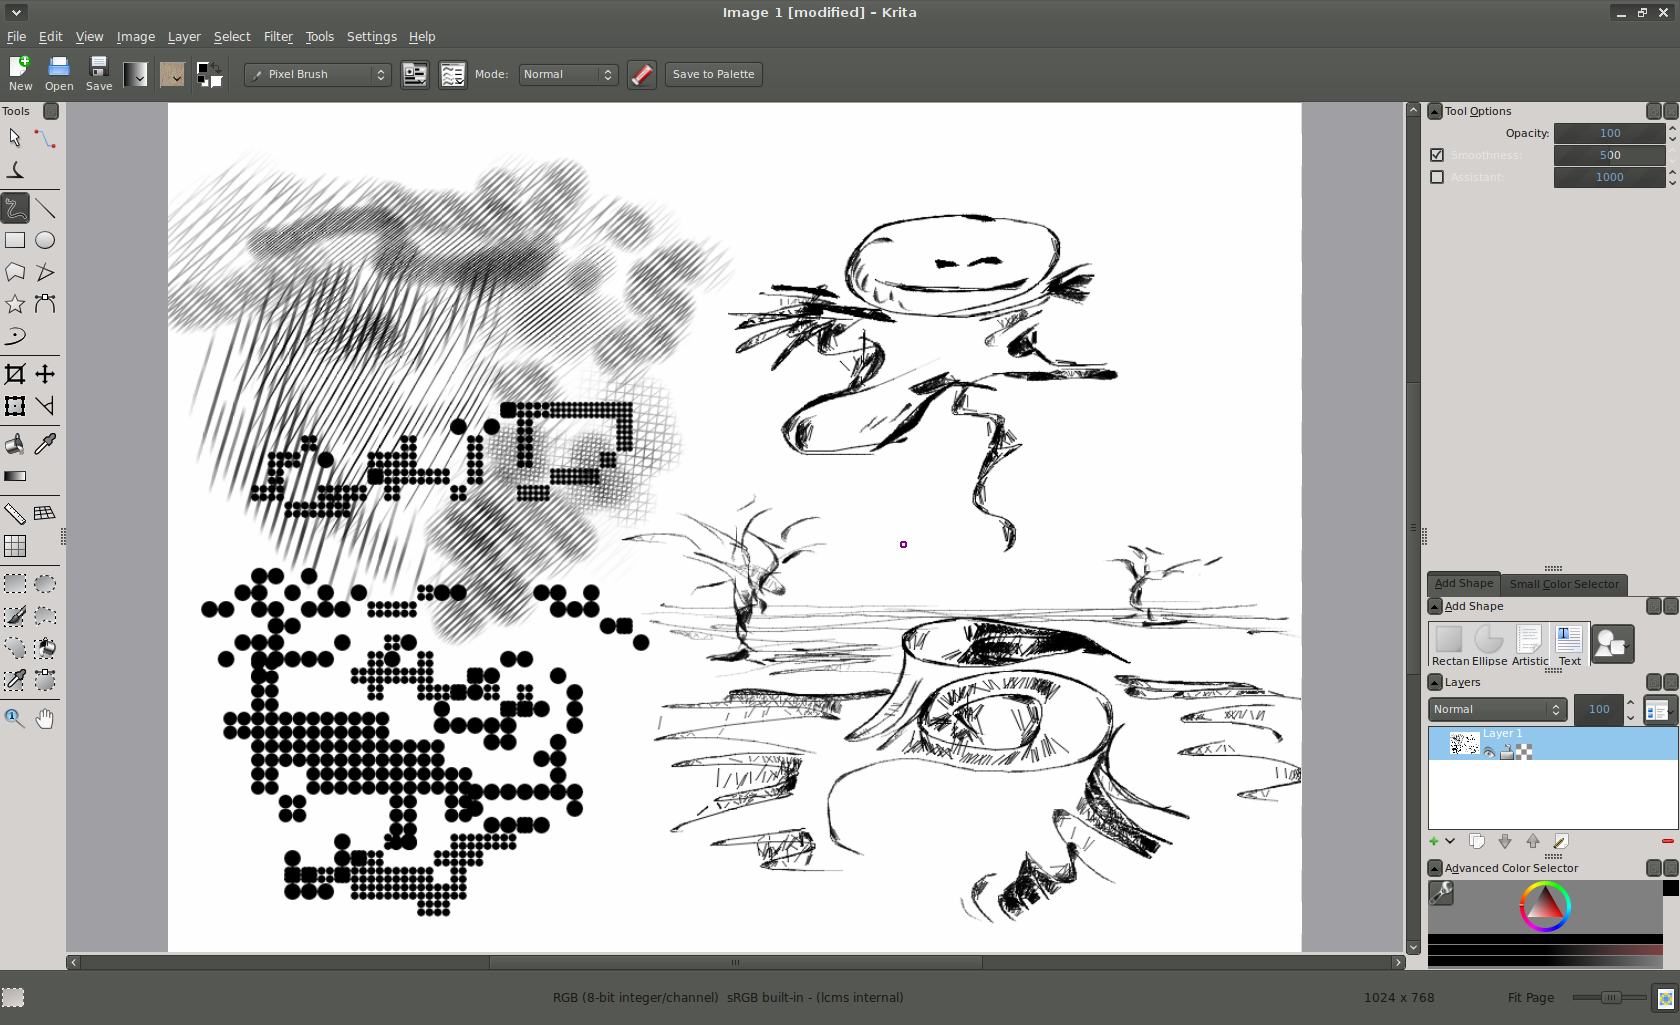 Modern Art: A Look at Krita 2 3 | Linux com | The source for